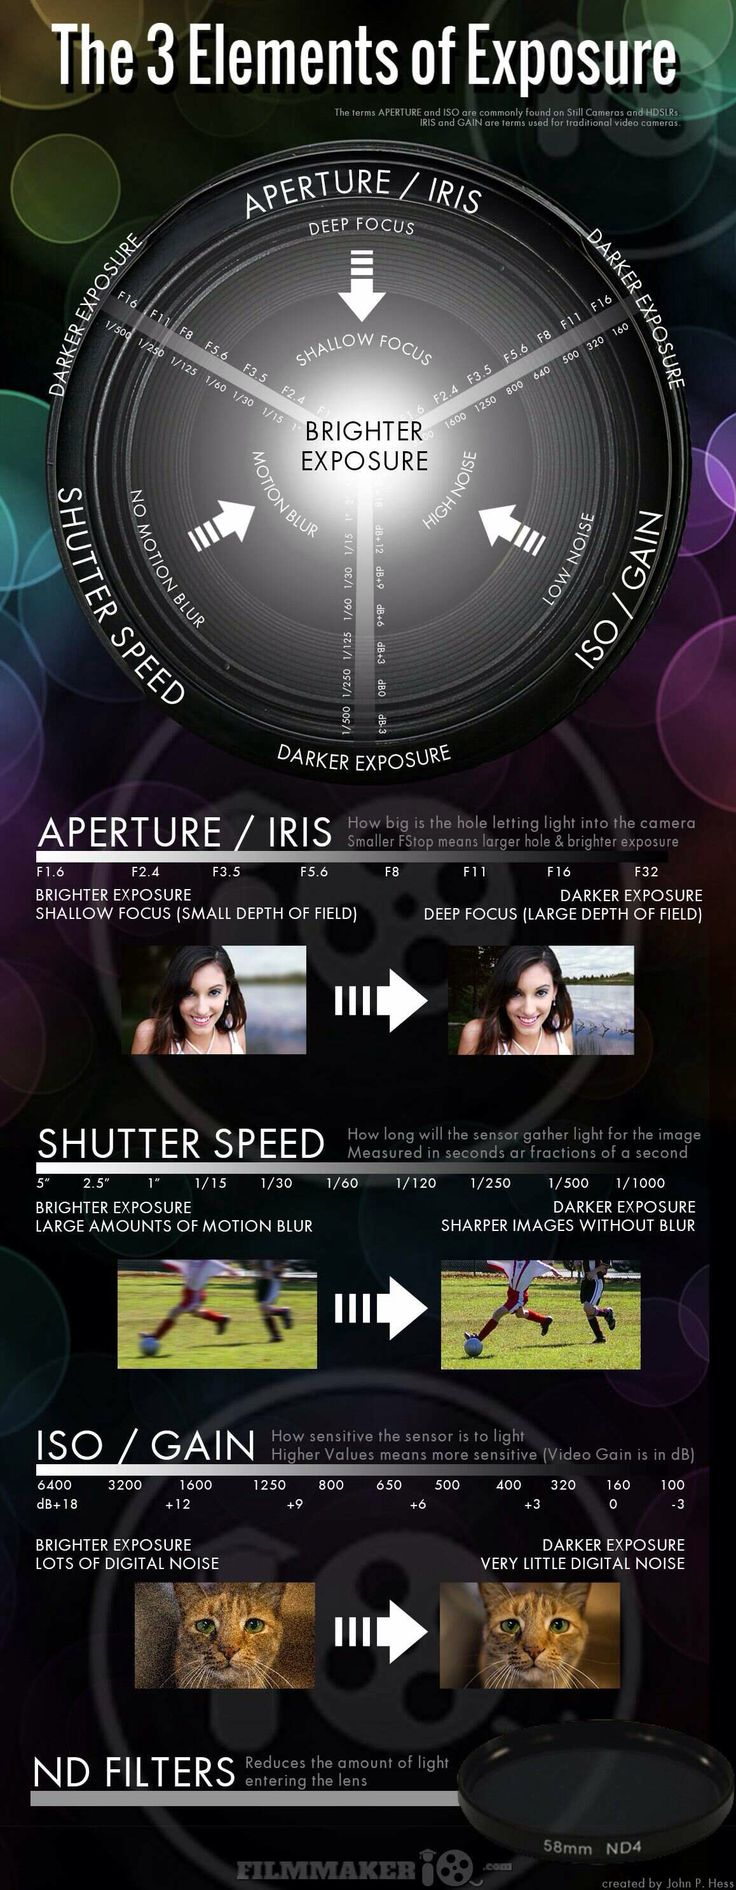 great visual on aperture/shutter speed/iso and how they work together at different settings